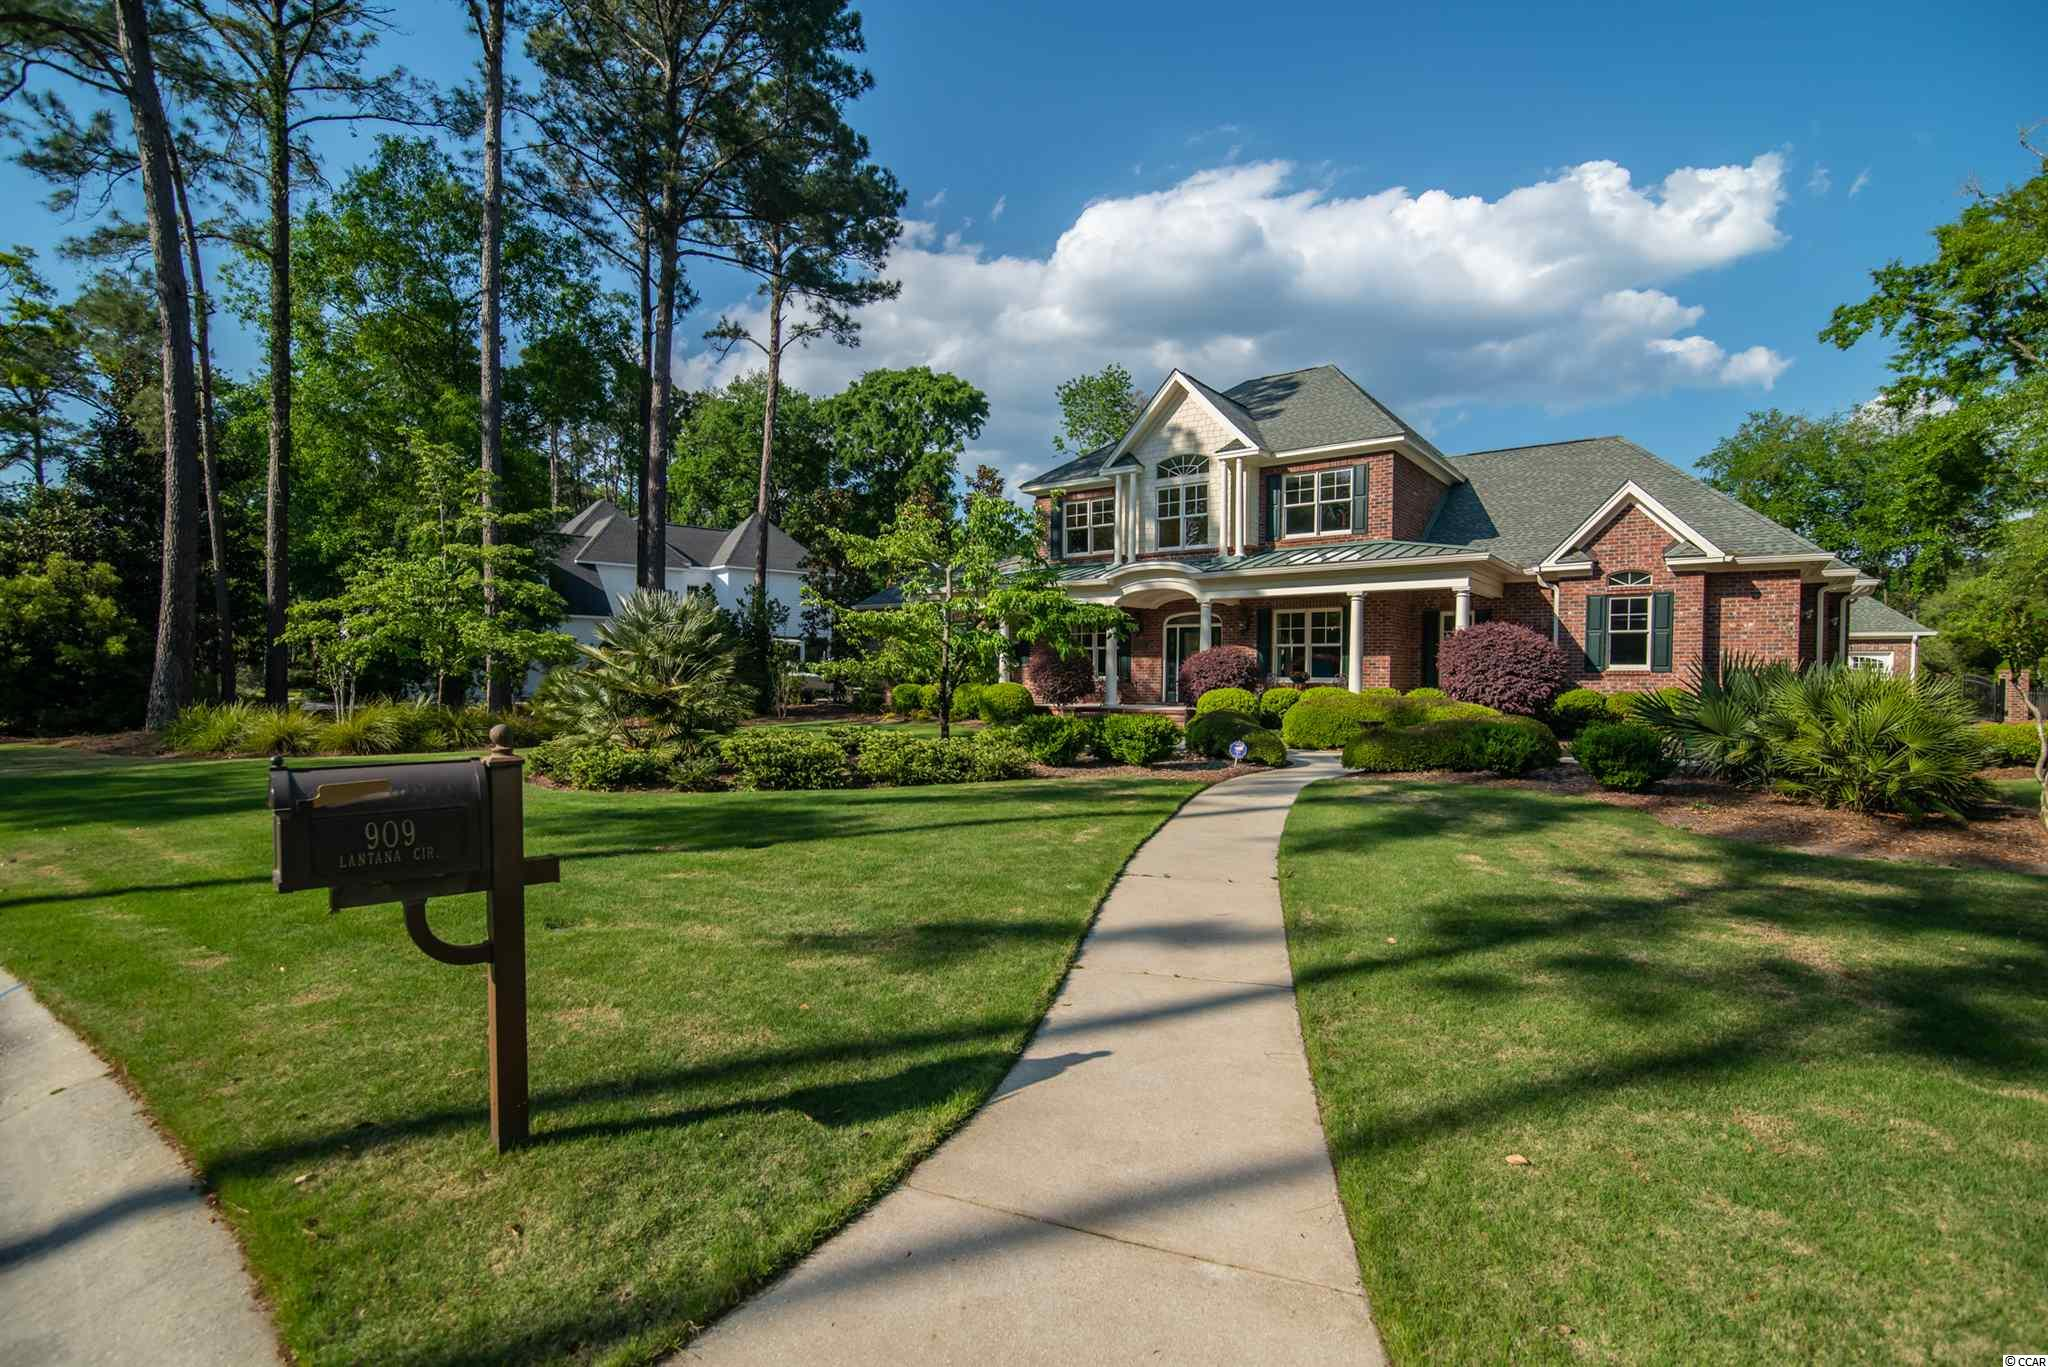 Stunning, traditional brick home located in the highly sought after, coastal, low country community of DeBordieu.    This home truly is a stunner!  From the moment you pull up to this property located on a ¾ acre corner lot with lake view, you will be delighted by the custom landscape and attention to detail.  Featuring 4,985 of heated luxury square feet there isn't much this home does not offer to potential owners.  Beginning with the 2-car attached and 2-car detached climate-controlled garages with professional epoxy floors this will make any car buff thrilled. The garage area also features an attached 300 square foot climate-controlled workshop as well as additional golf cart garage with separate entrance and lots of additional storage.  The back yard features a luxury oasis that includes a 579 square foot rear porch with tile floors, fireplace, ceiling fans and remote-controlled screens that can be activated with the touch of a button. To top it all off, this home features a built in Gunite pool with deep end, full irrigation system, remote control gate, outdoor shower, pool bathroom and full outdoor kitchen.    Once inside, this home offers even more features than outside!  From custom closets, fixtures and flooring this home will make living in the low country a dream.  The main floor features two-story entrance hall with barrel ceiling, two story great room with floor to ceiling fireplace, surround sound system throughout including rear porch, built in cabinets and professional custom kitchen with eat in dining area, walk-in pantry and heated tile floors throughout the main level.  Also on the main level is a formal dining room with custom genuine turquoise/Iron chandelier as well as a study/office that features custom coffered ceiling and lighting.   The large master suite downstairs is one of a kind with a 15 by 11 custom walk in closet, cedar lined built in Sauna, Jacuzzi tub, large shower w/bench and two separate vanities with lots of storage.   Upstairs 